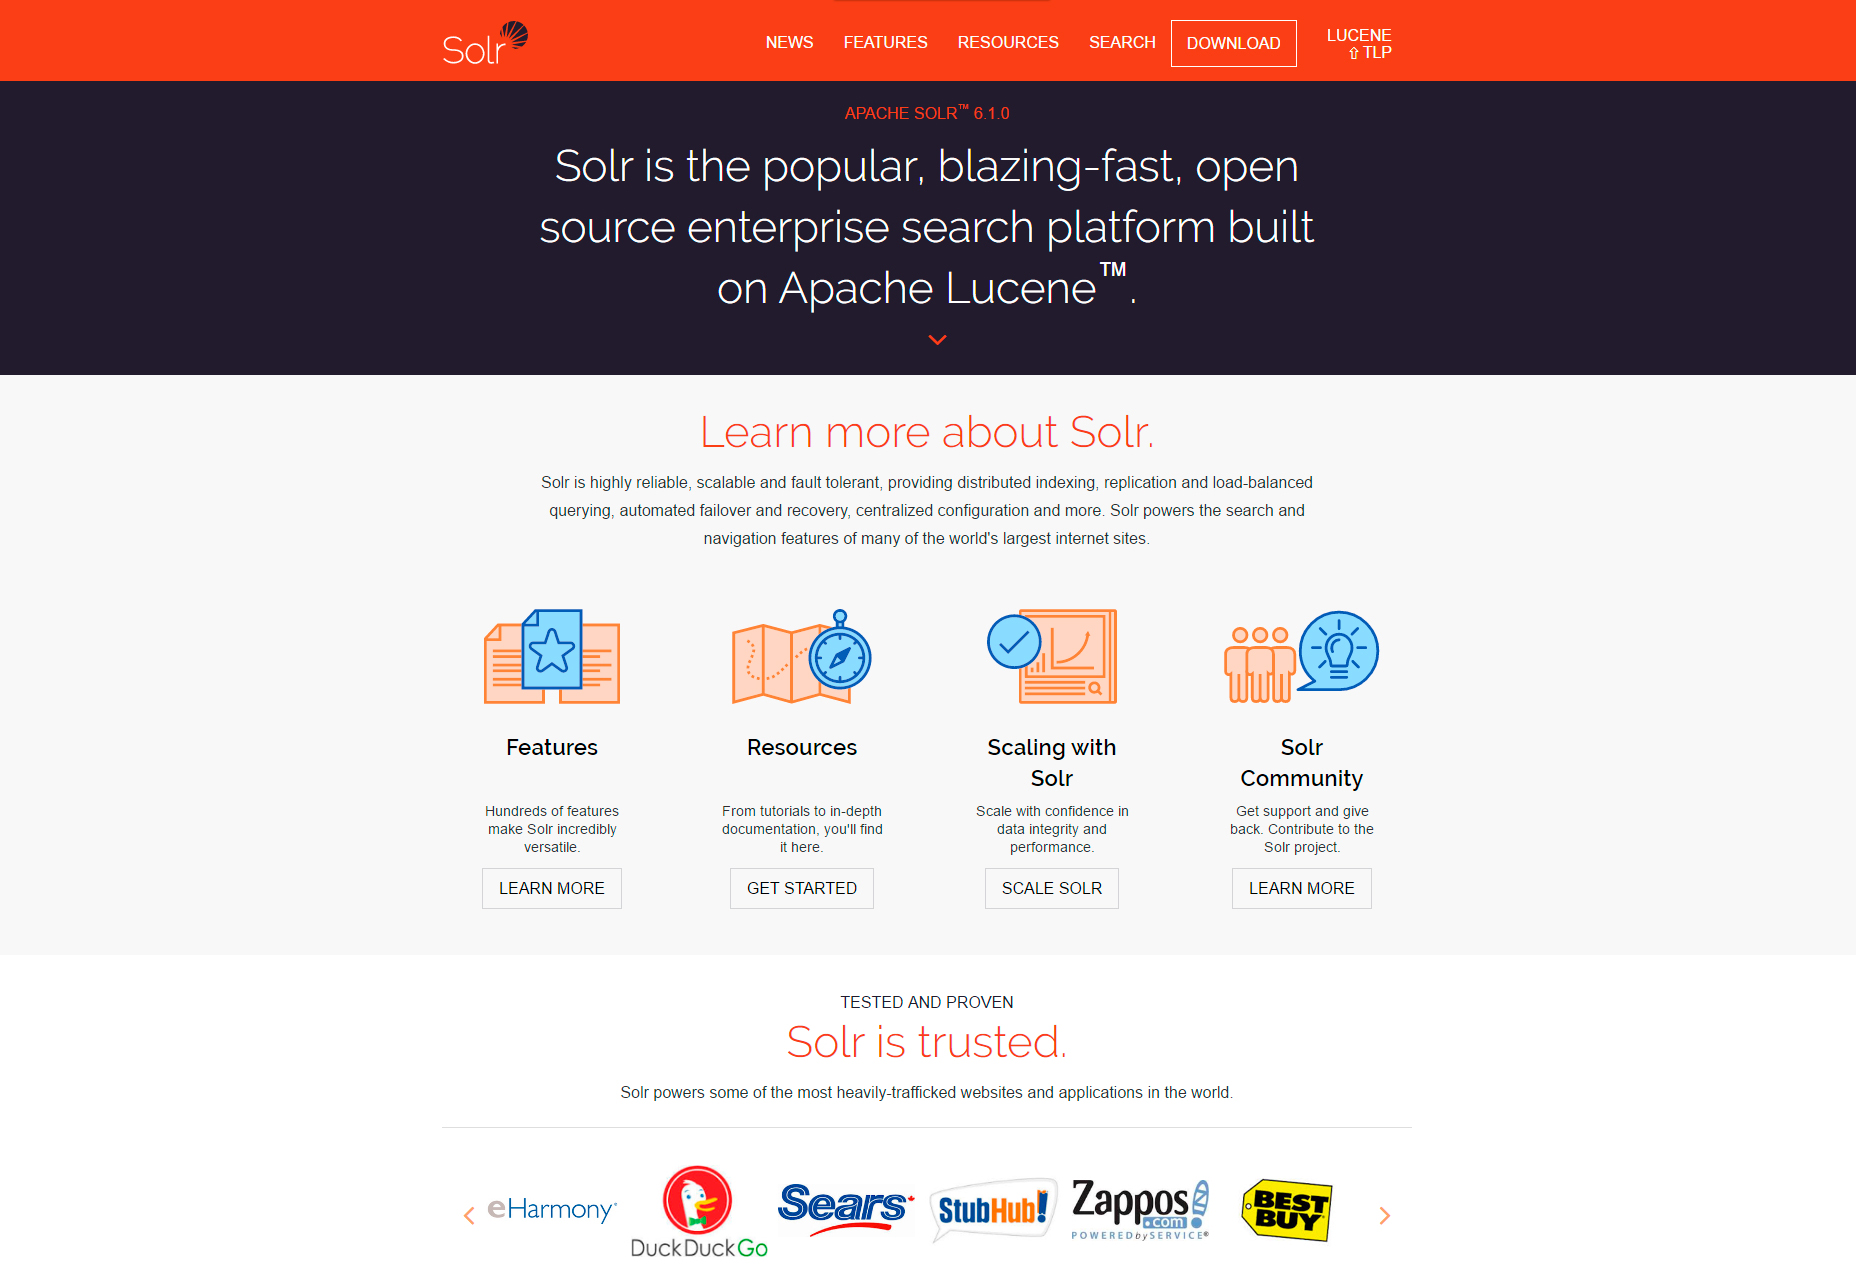 Solr: Open-source Enterprise Search Platform